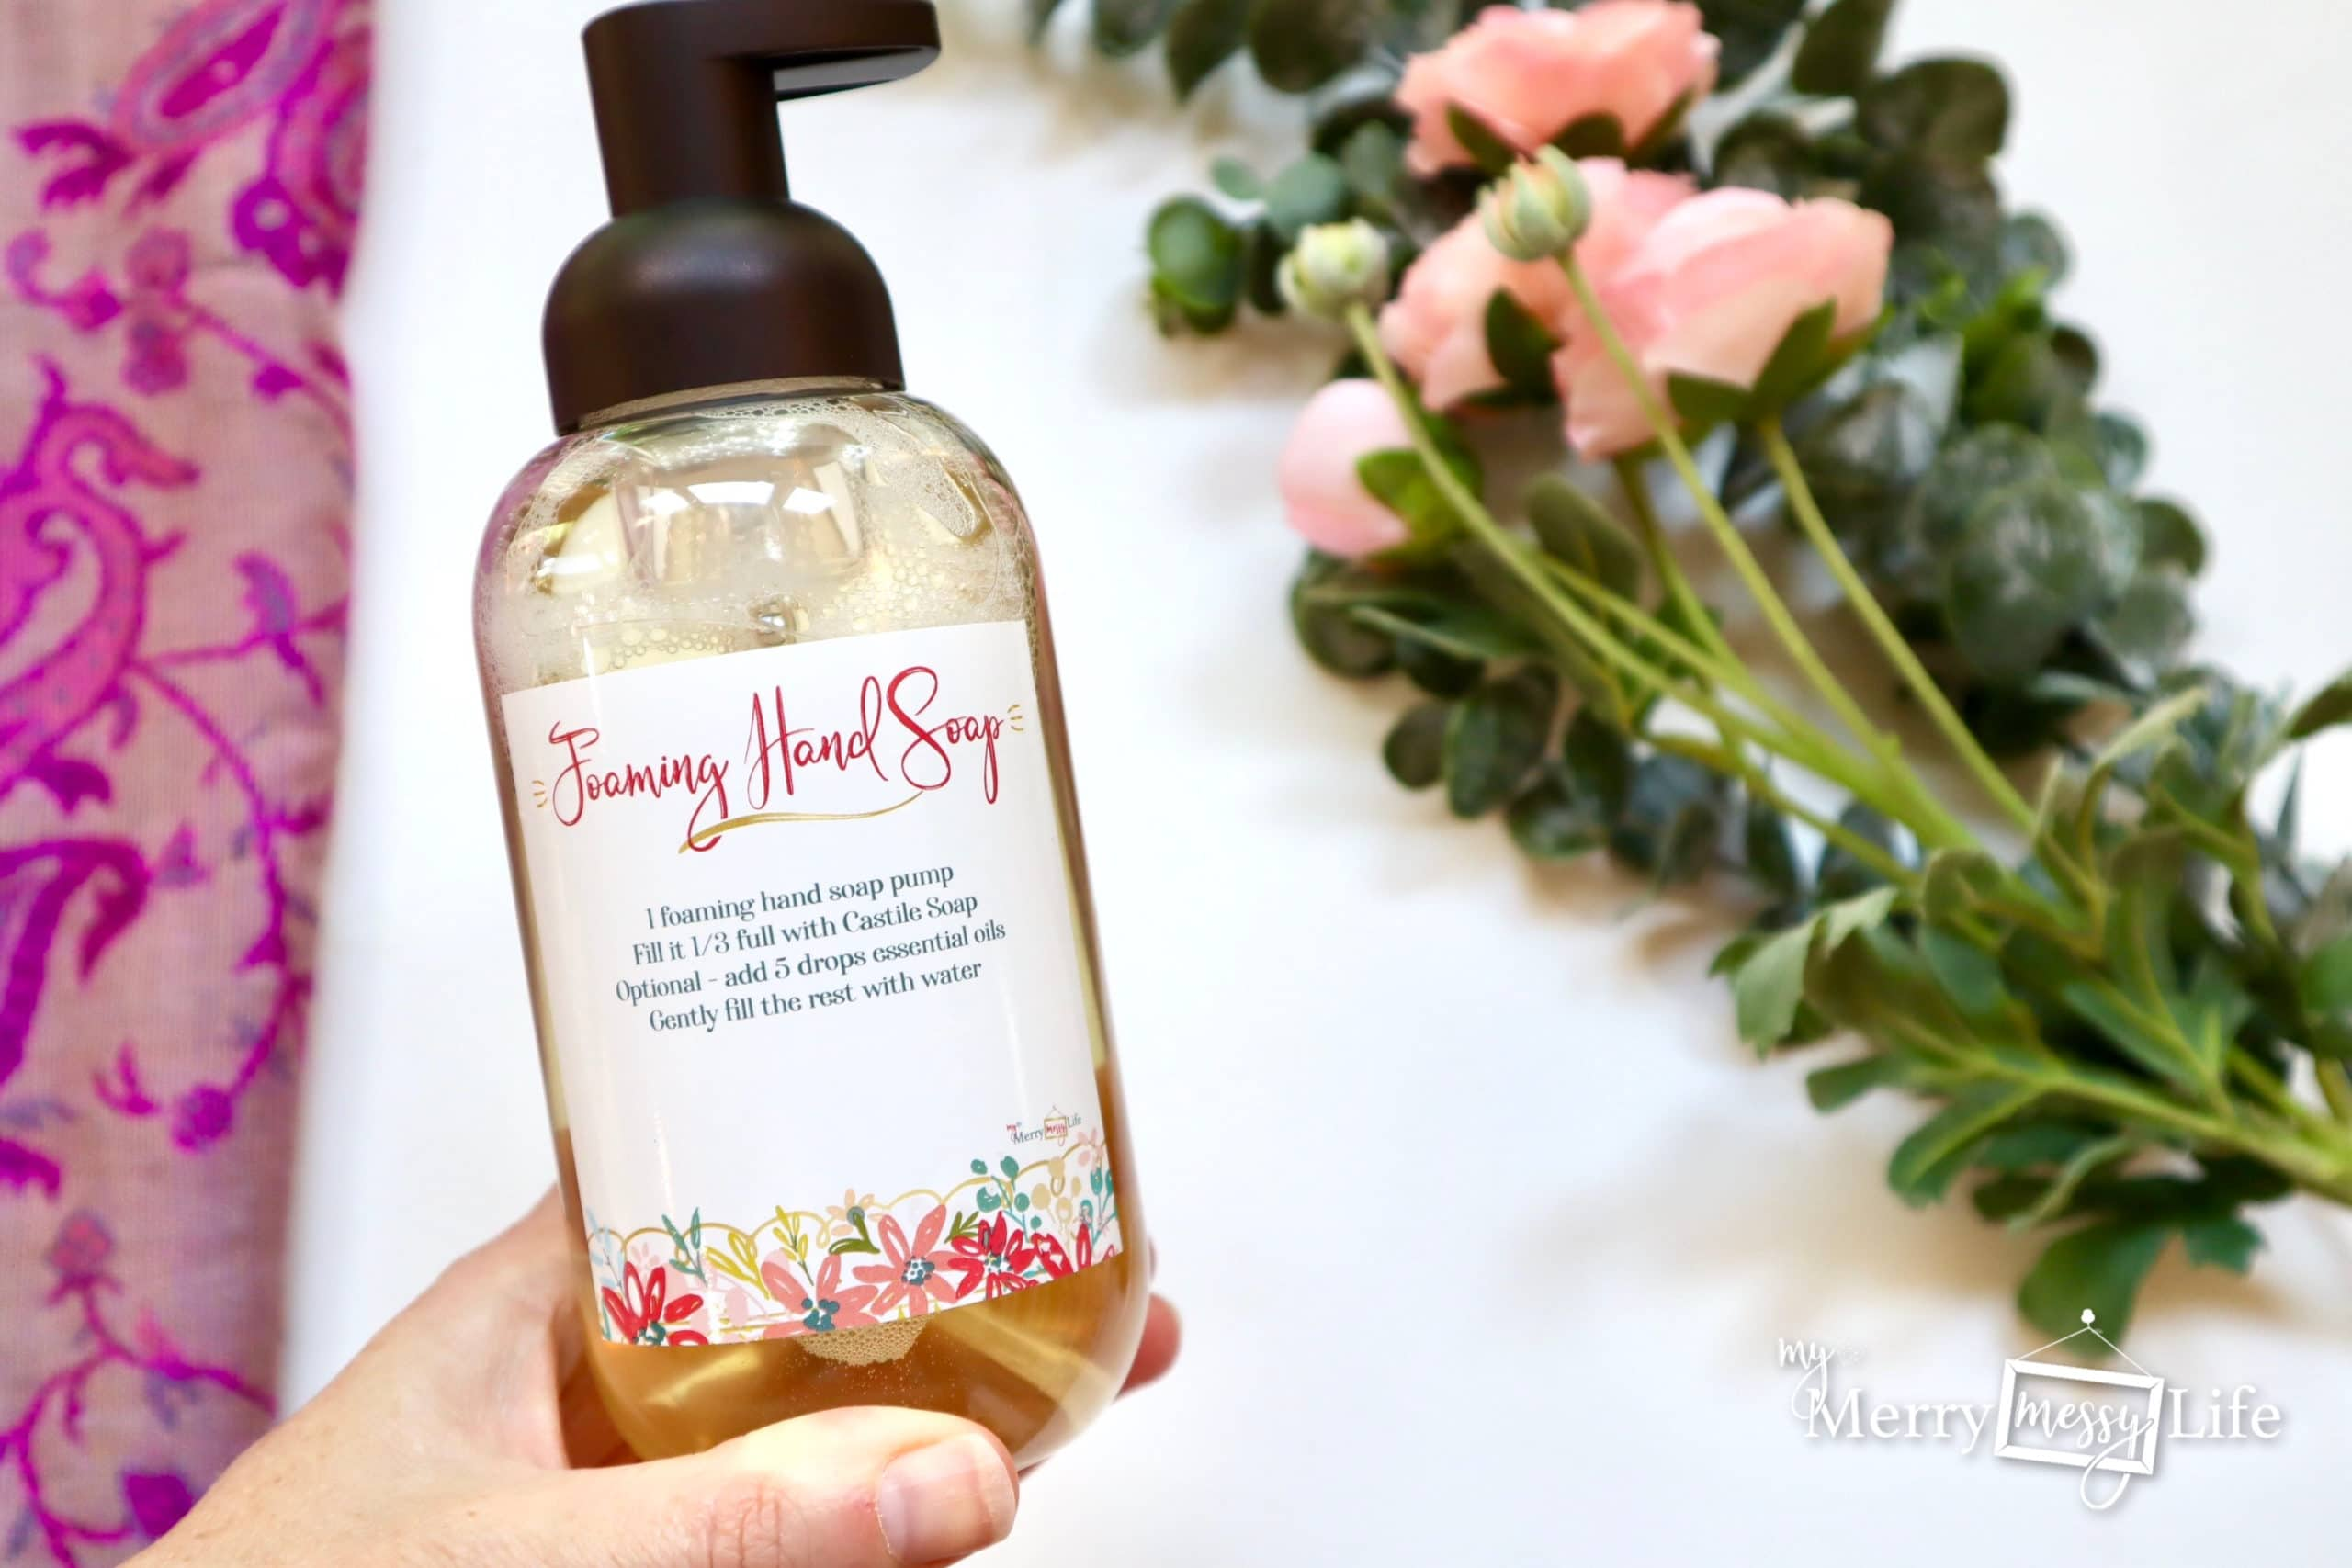 Homemade All-Natural Foaming Hand Soap